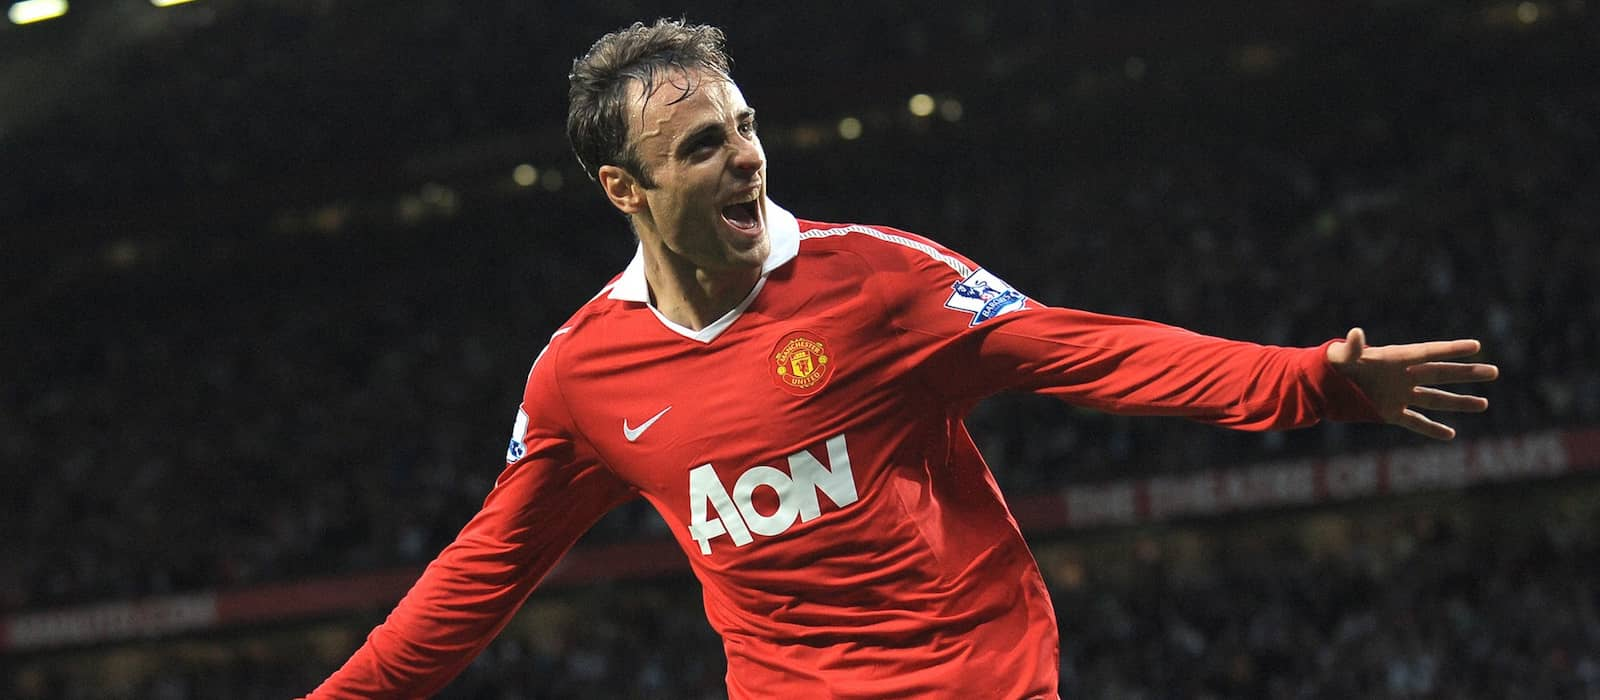 Dimitar Berbatov tips Manchester United to win the Premier League